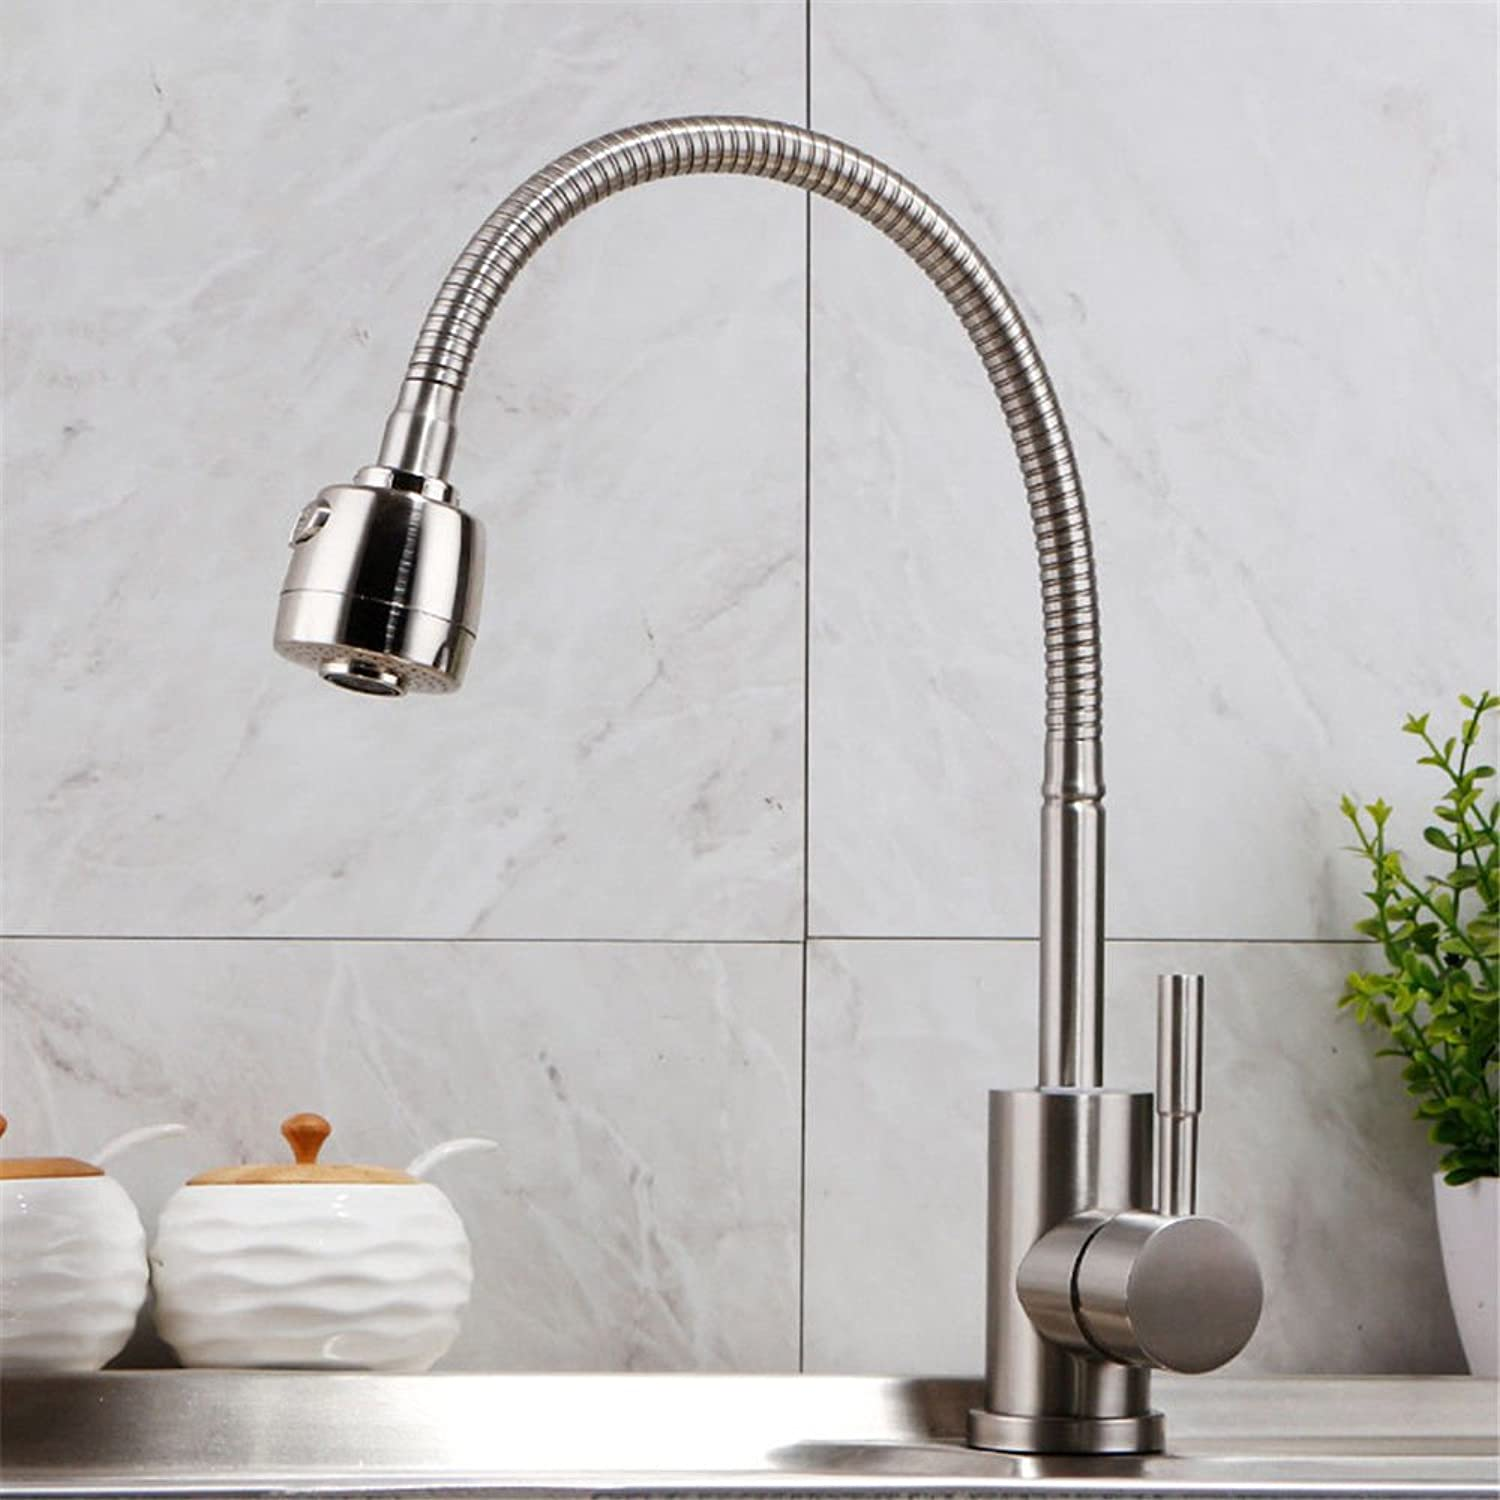 Gyps Faucet Basin Mixer Tap Waterfall Faucet Antique Bathroom Stainless steel kitchen faucet hot and cold dishes redating wash basin sink with Shower Faucet Bathroom Tub Lever Faucet